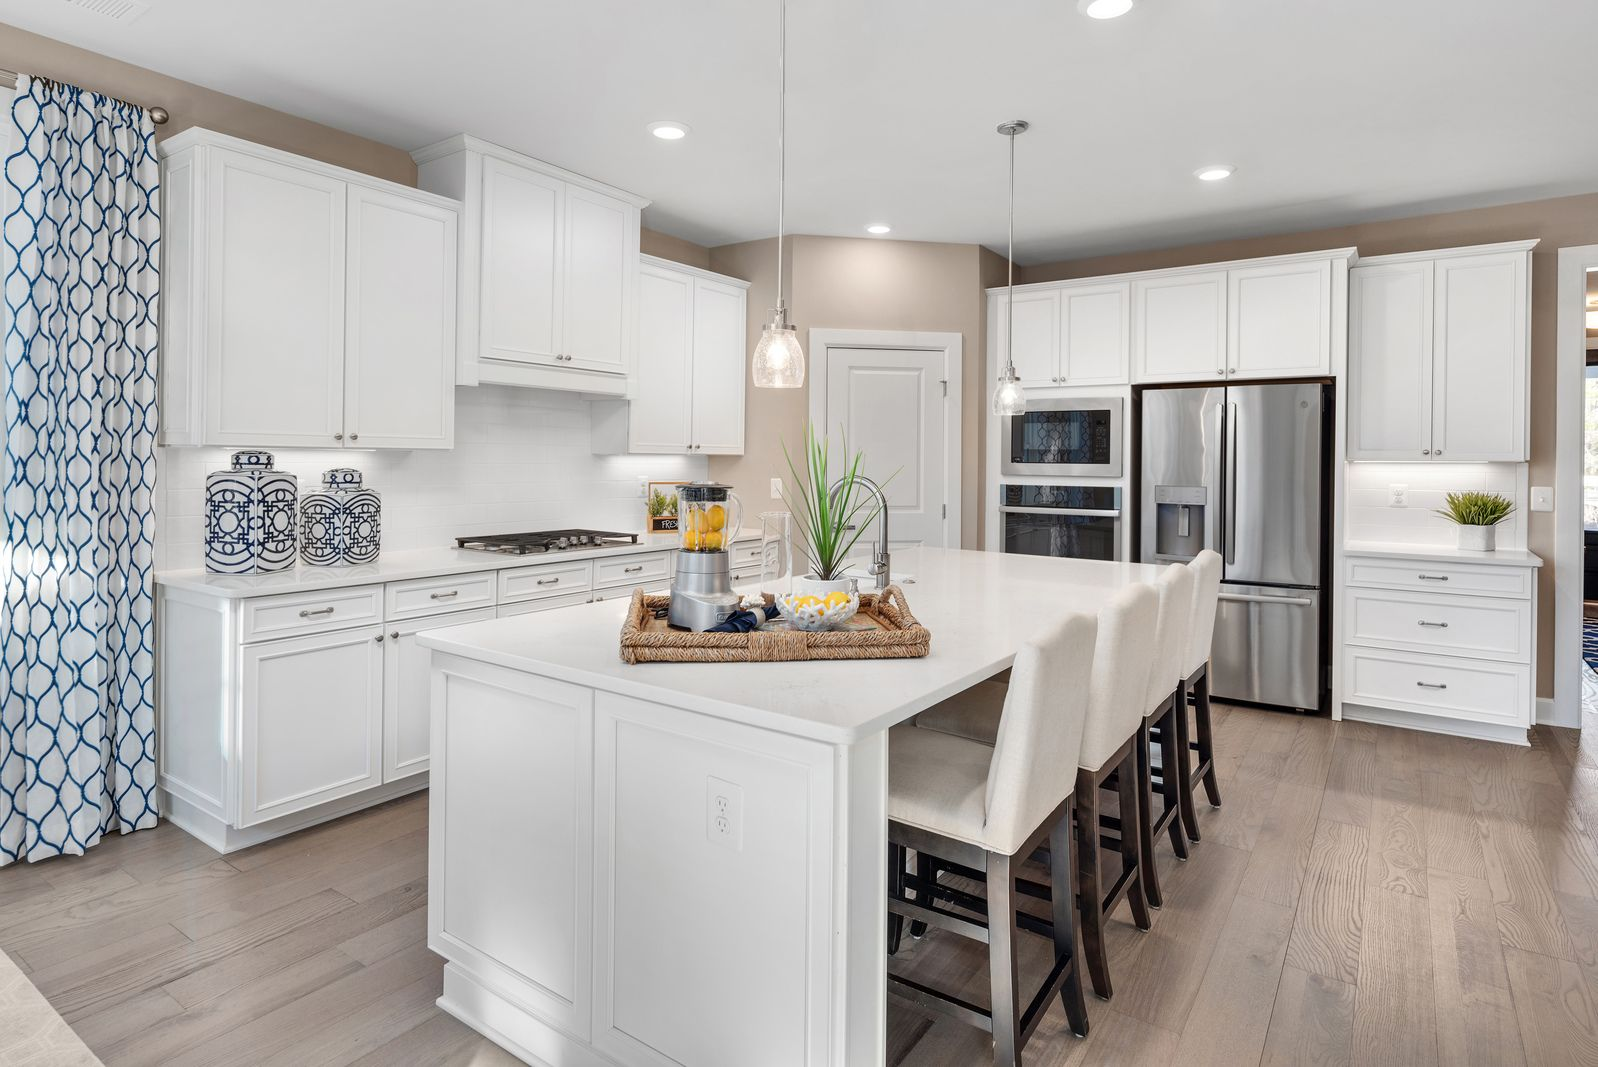 Kitchen featured in the Edgewood By NVHomes in Sussex, DE